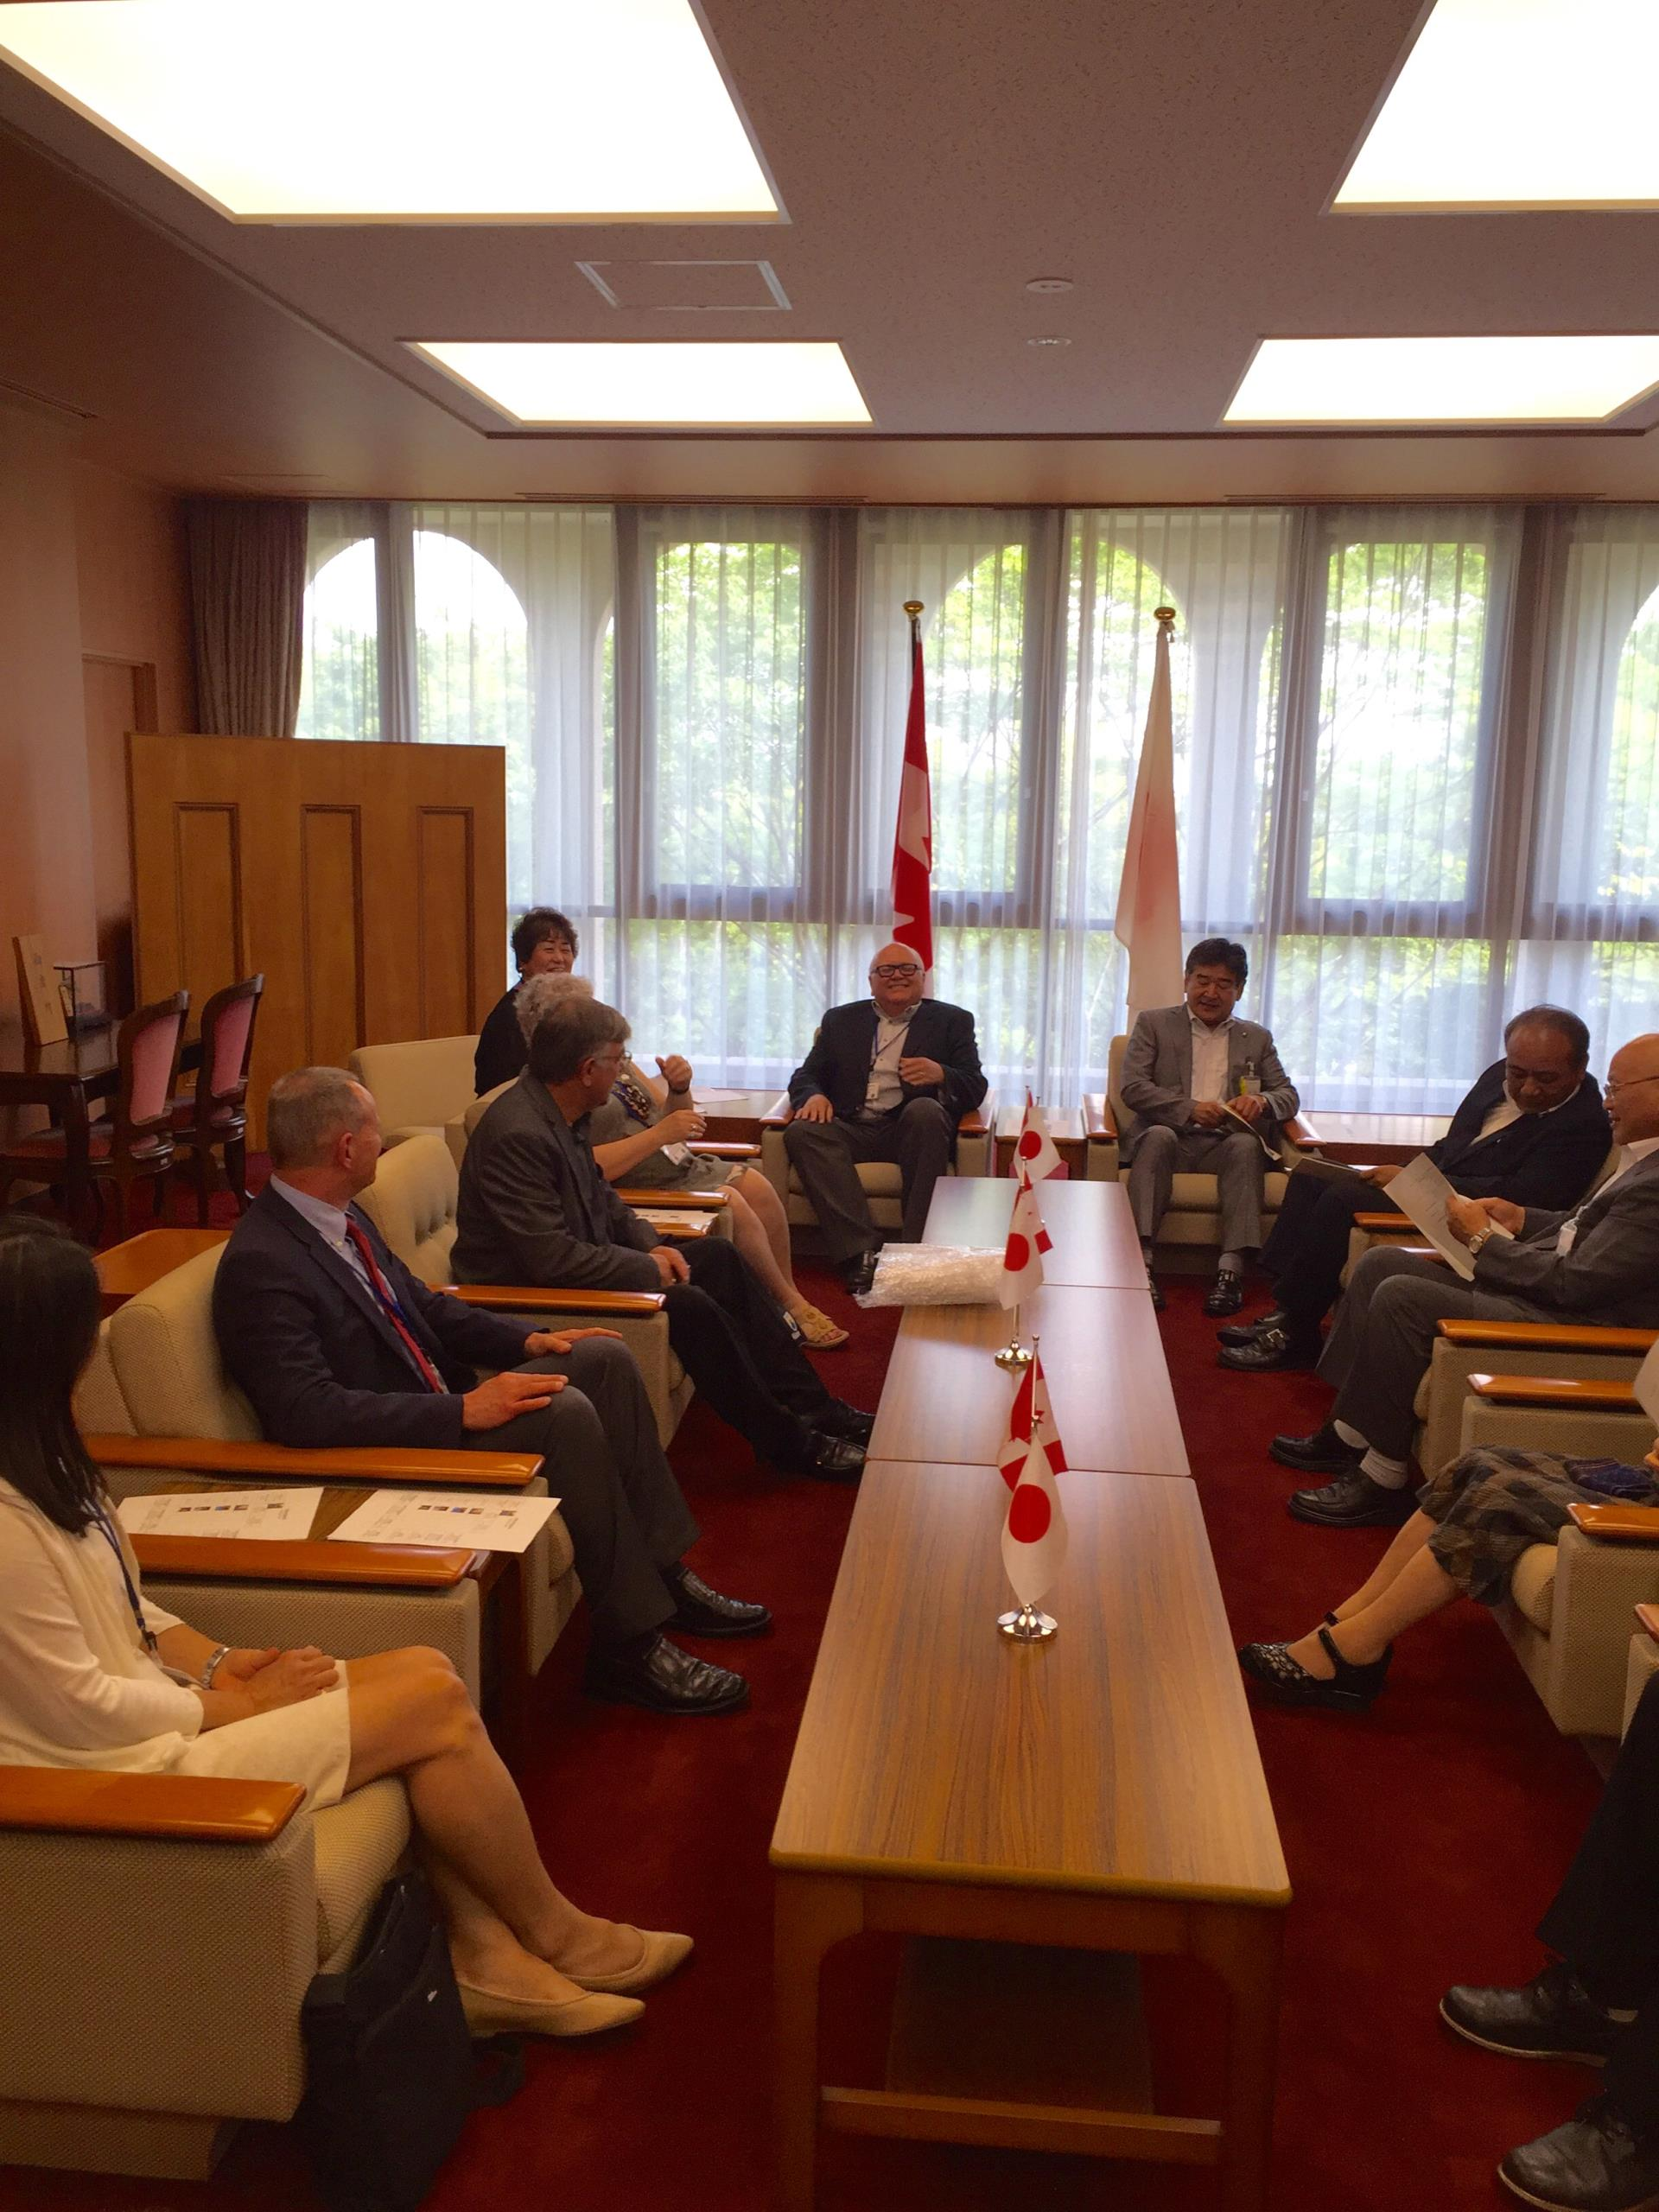 A Very Special Meeting - The 2016 Taber Delegates meet with local officials in Higashiomi